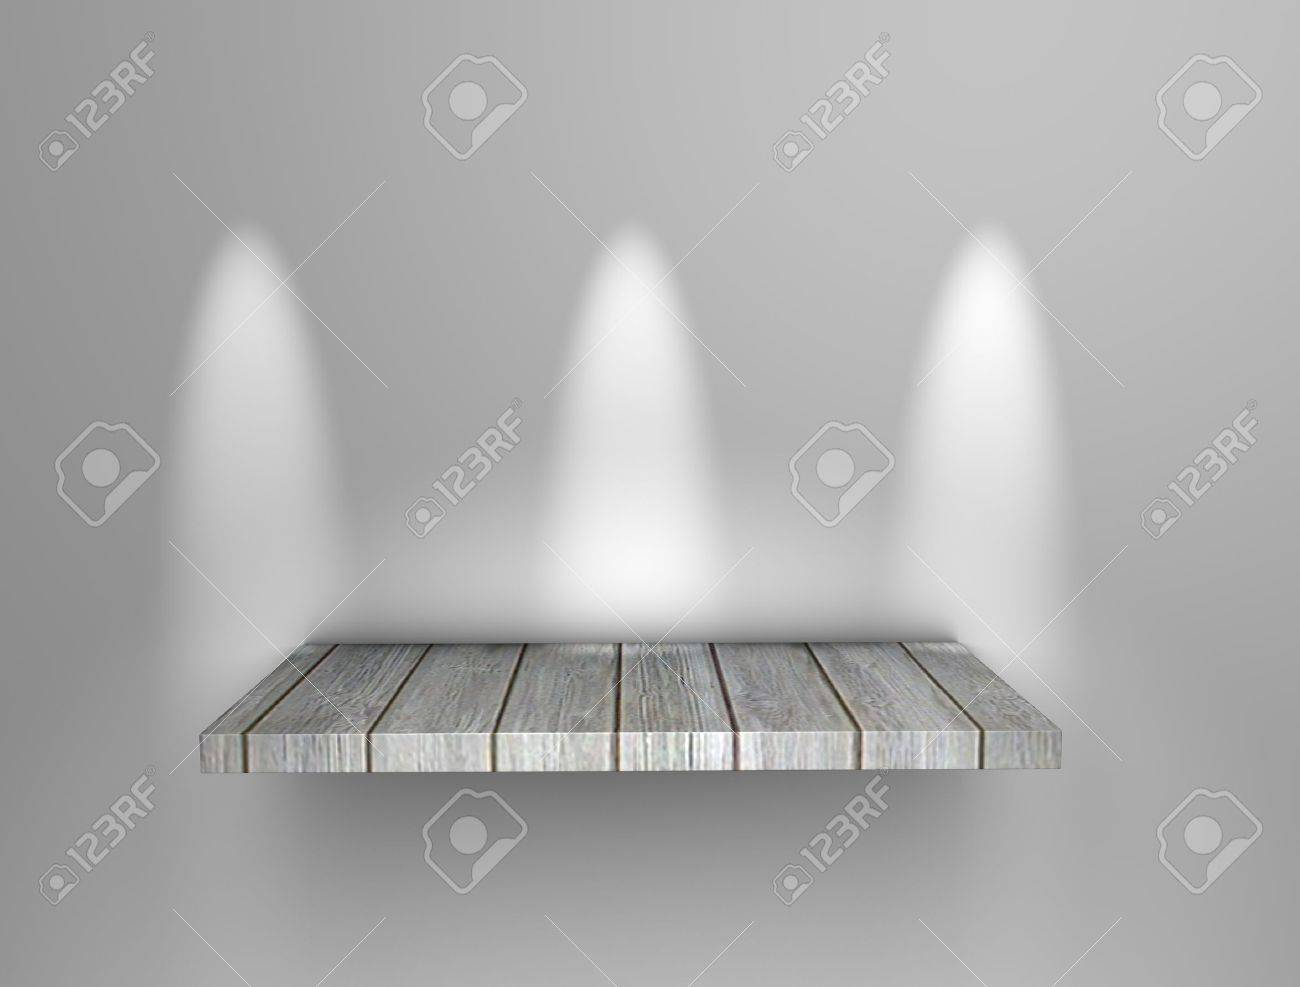 3d rendering, art display shelf, isolated background. Stock Photo - 11742599